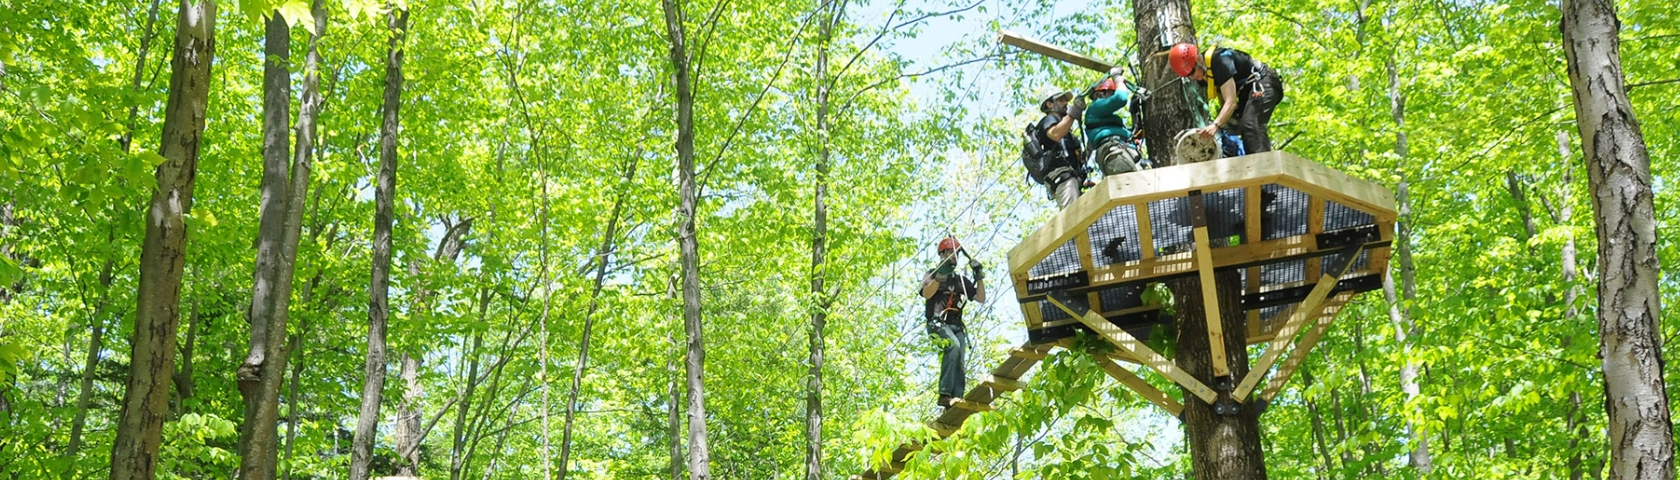 Group of zip liners standing on a platform high in the trees